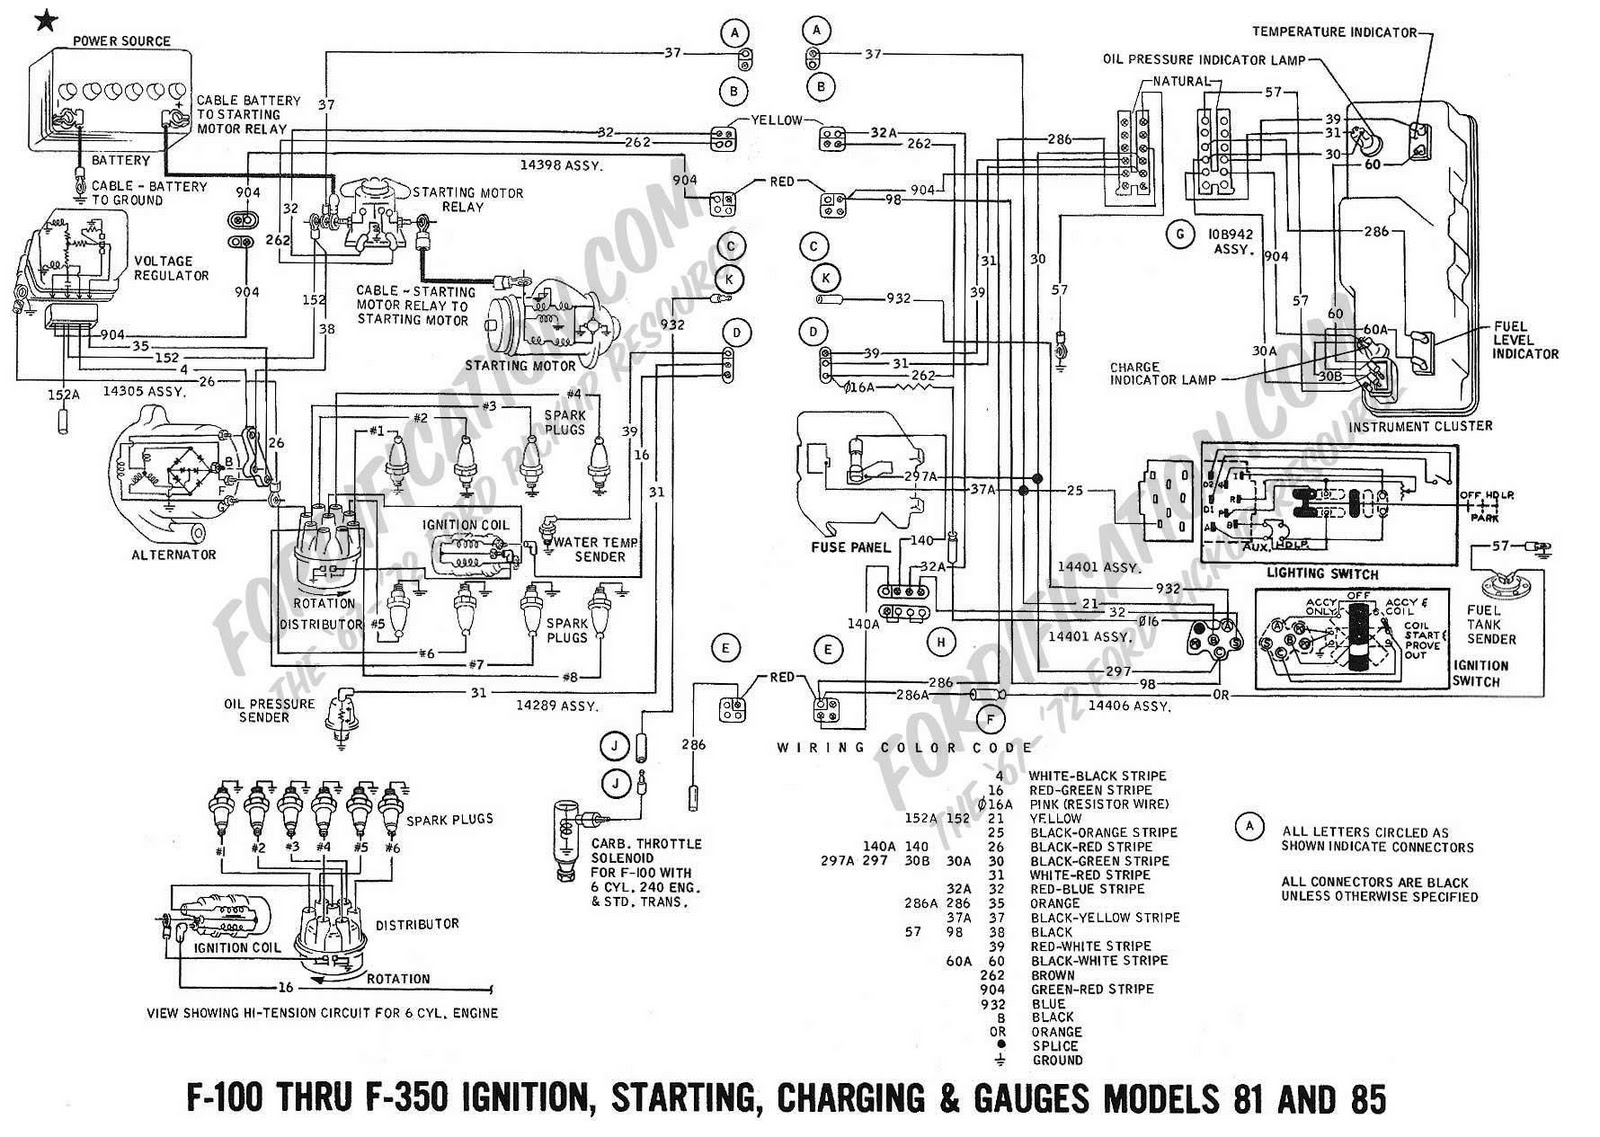 1964 F350 Ford Wiring Harness Diagram Factory Radio E4od Swap F 350 Electrical Imageresizertool Com Trailer Diagrams